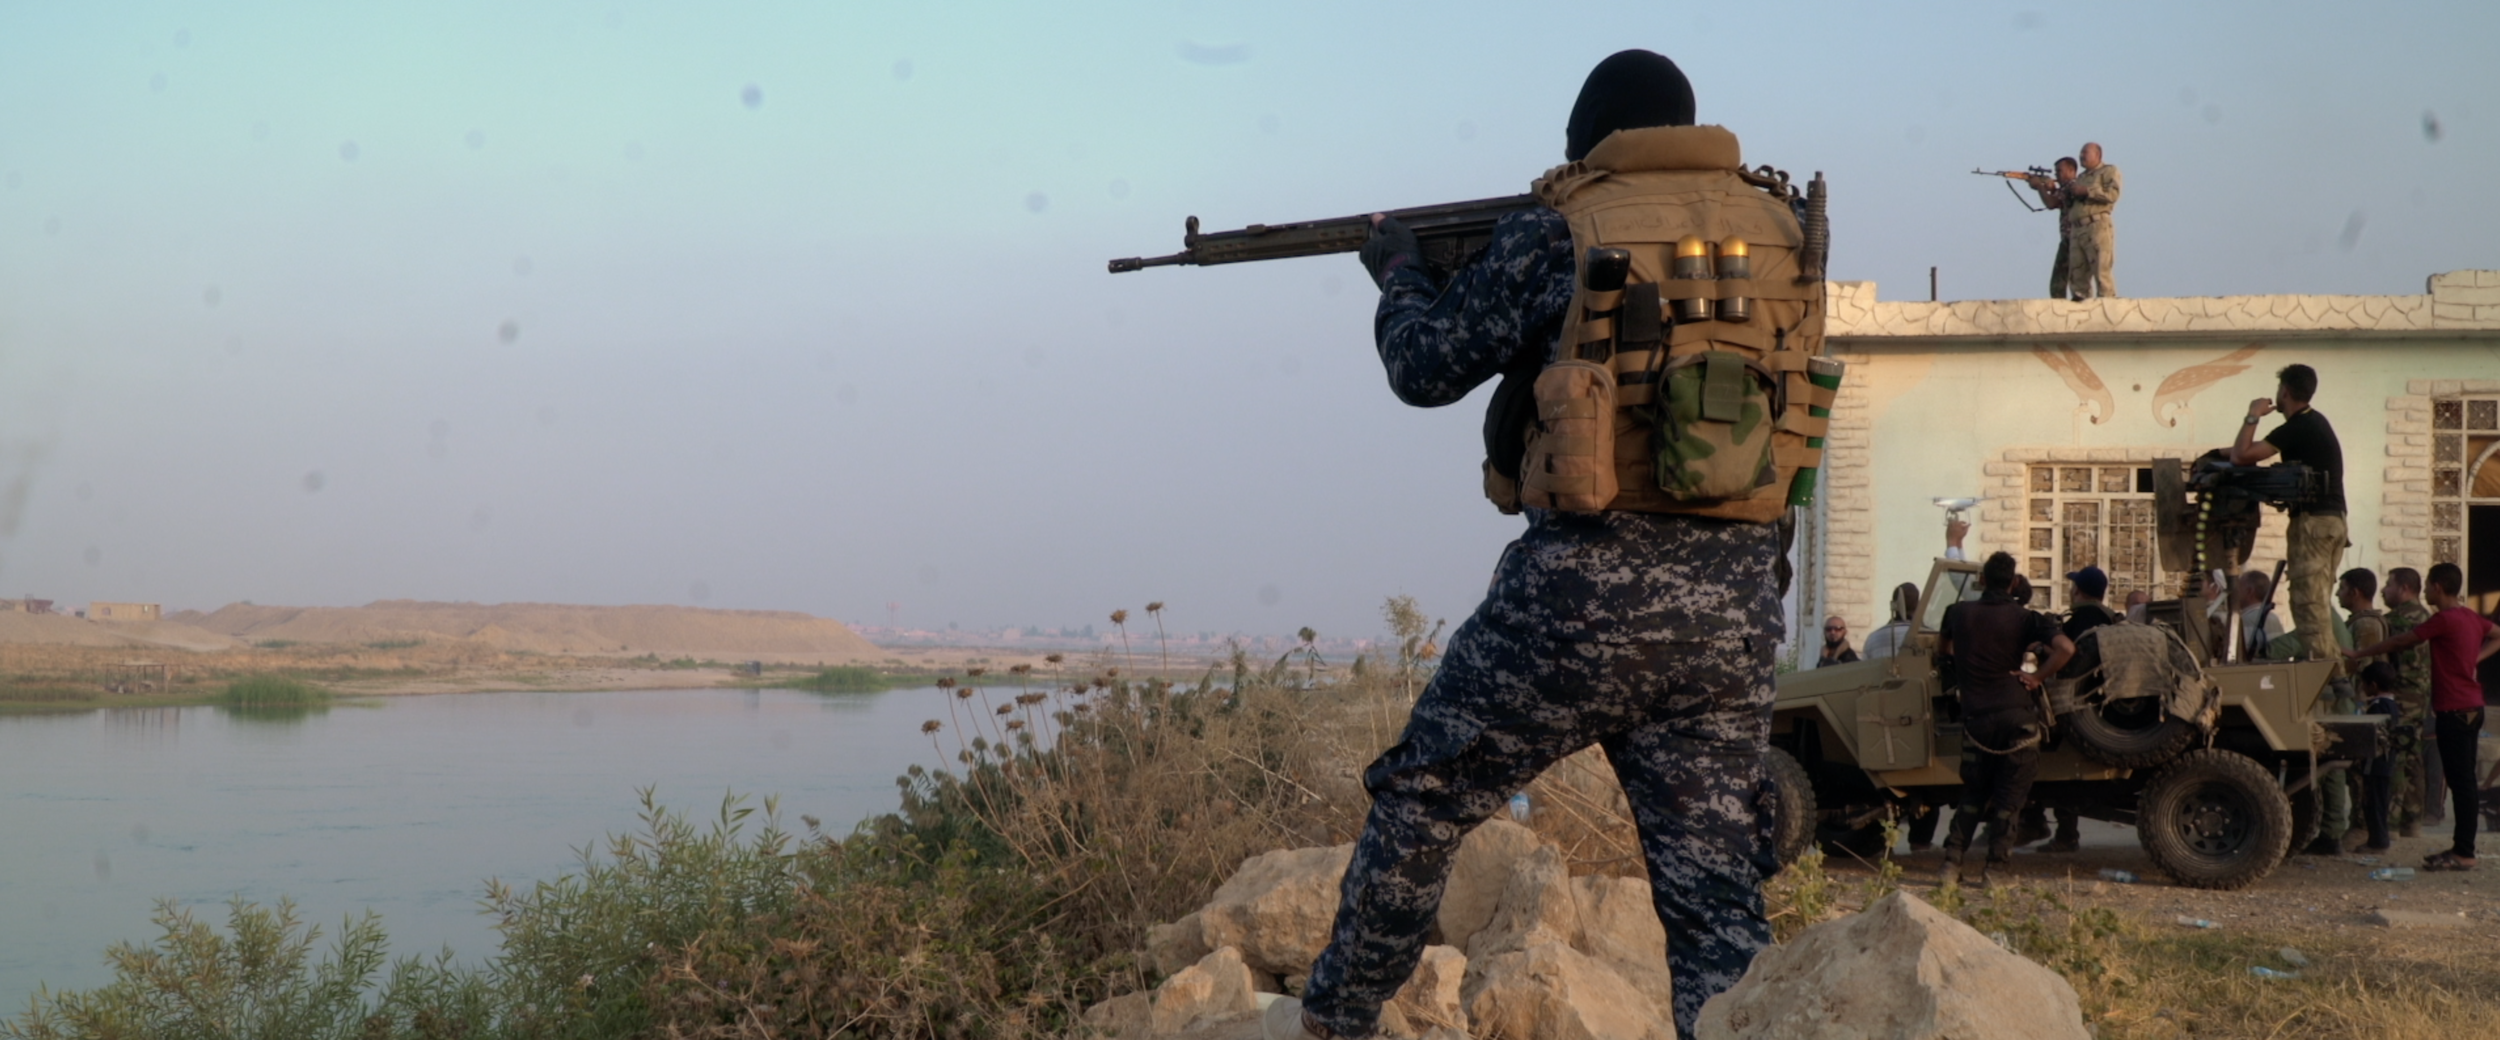 Soldiers points rifle overlooking Tigris river.png